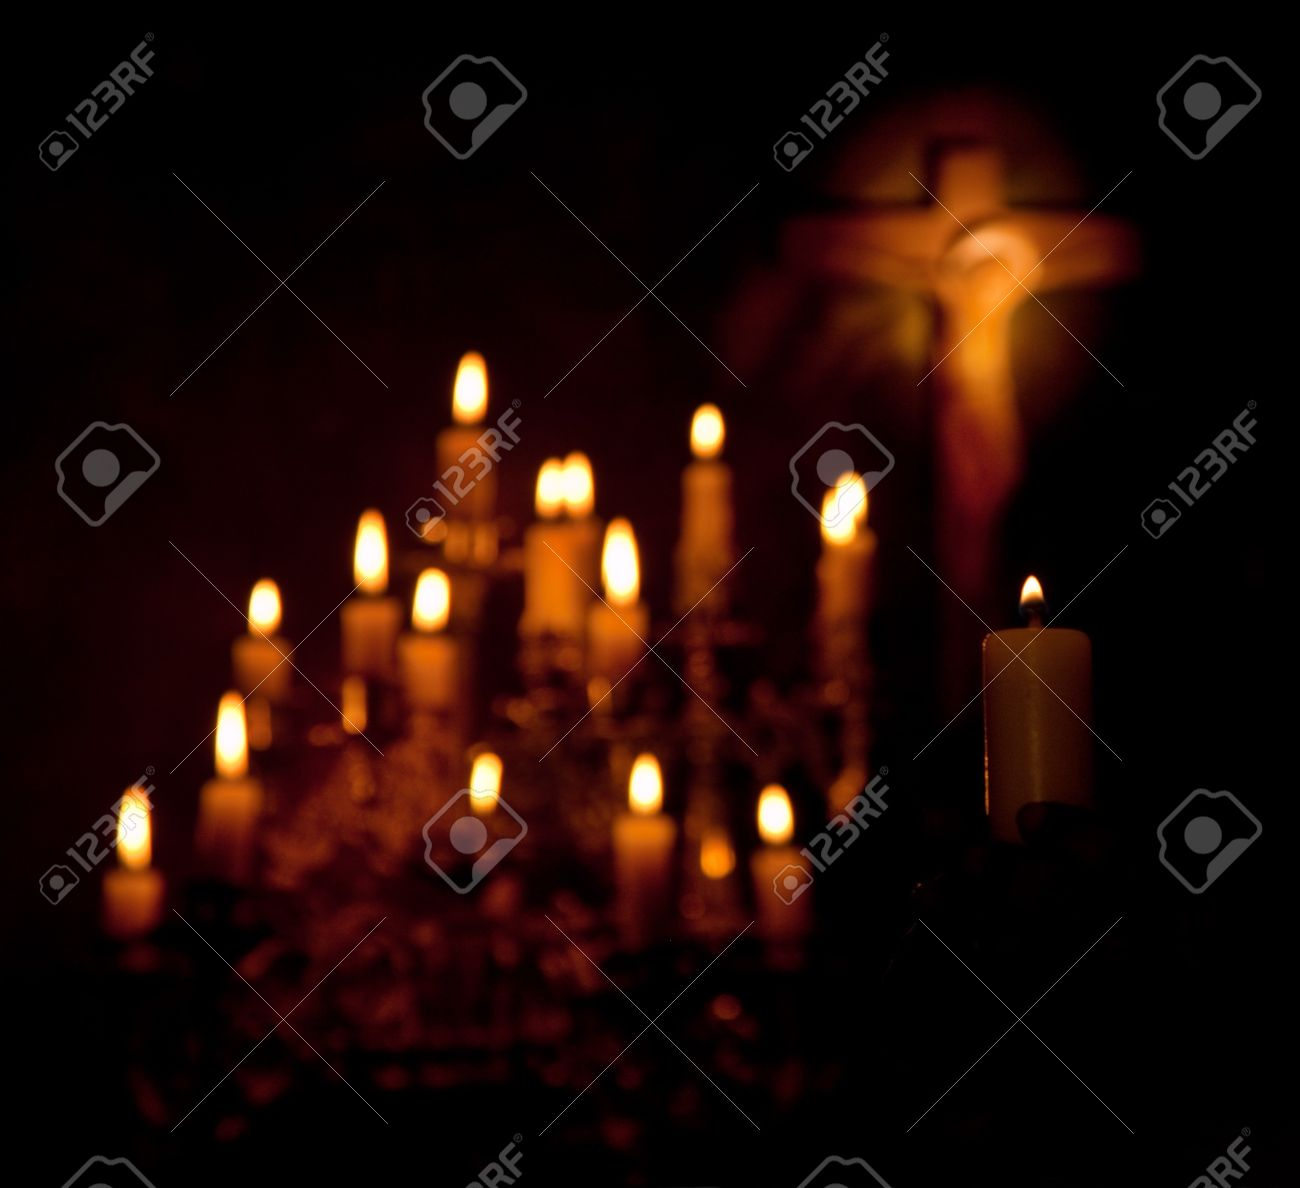 Holy cross and candles lighting in the darkness Stock Photo - 4160926 & Holy Cross And Candles Lighting In The Darkness Stock Photo Picture ...